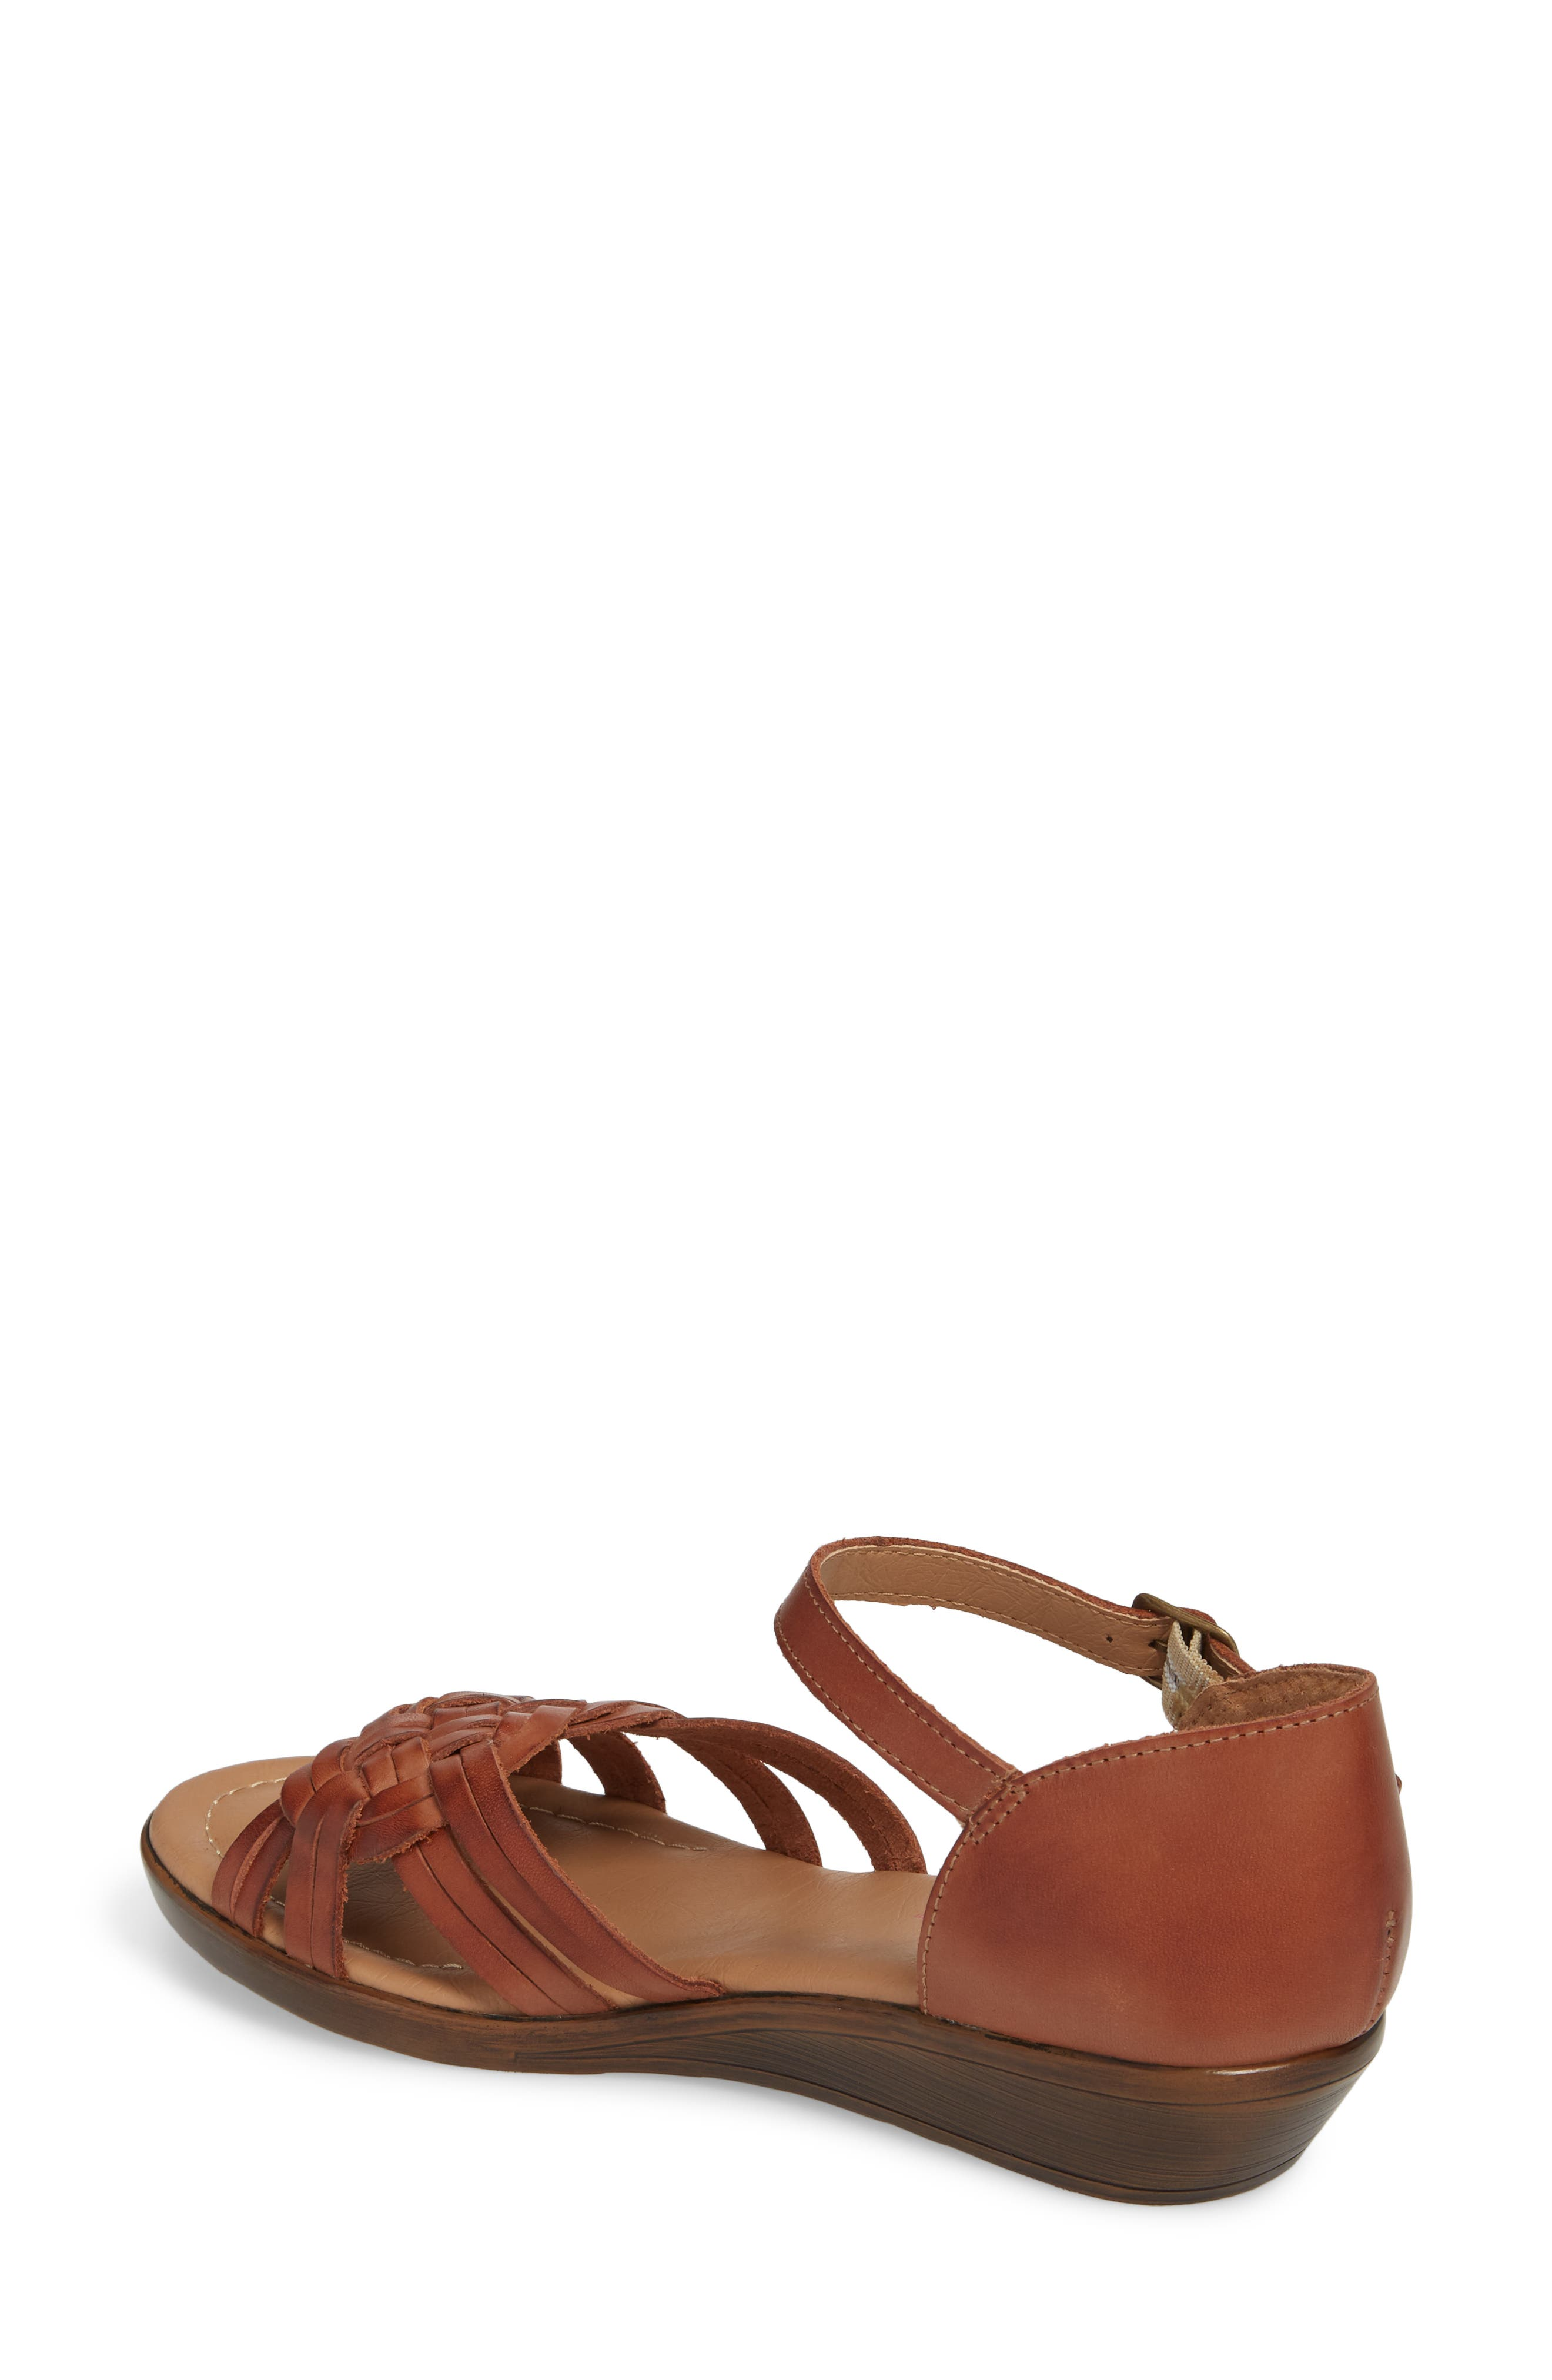 Fortune Sandal,                             Alternate thumbnail 2, color,                             Rust Leather